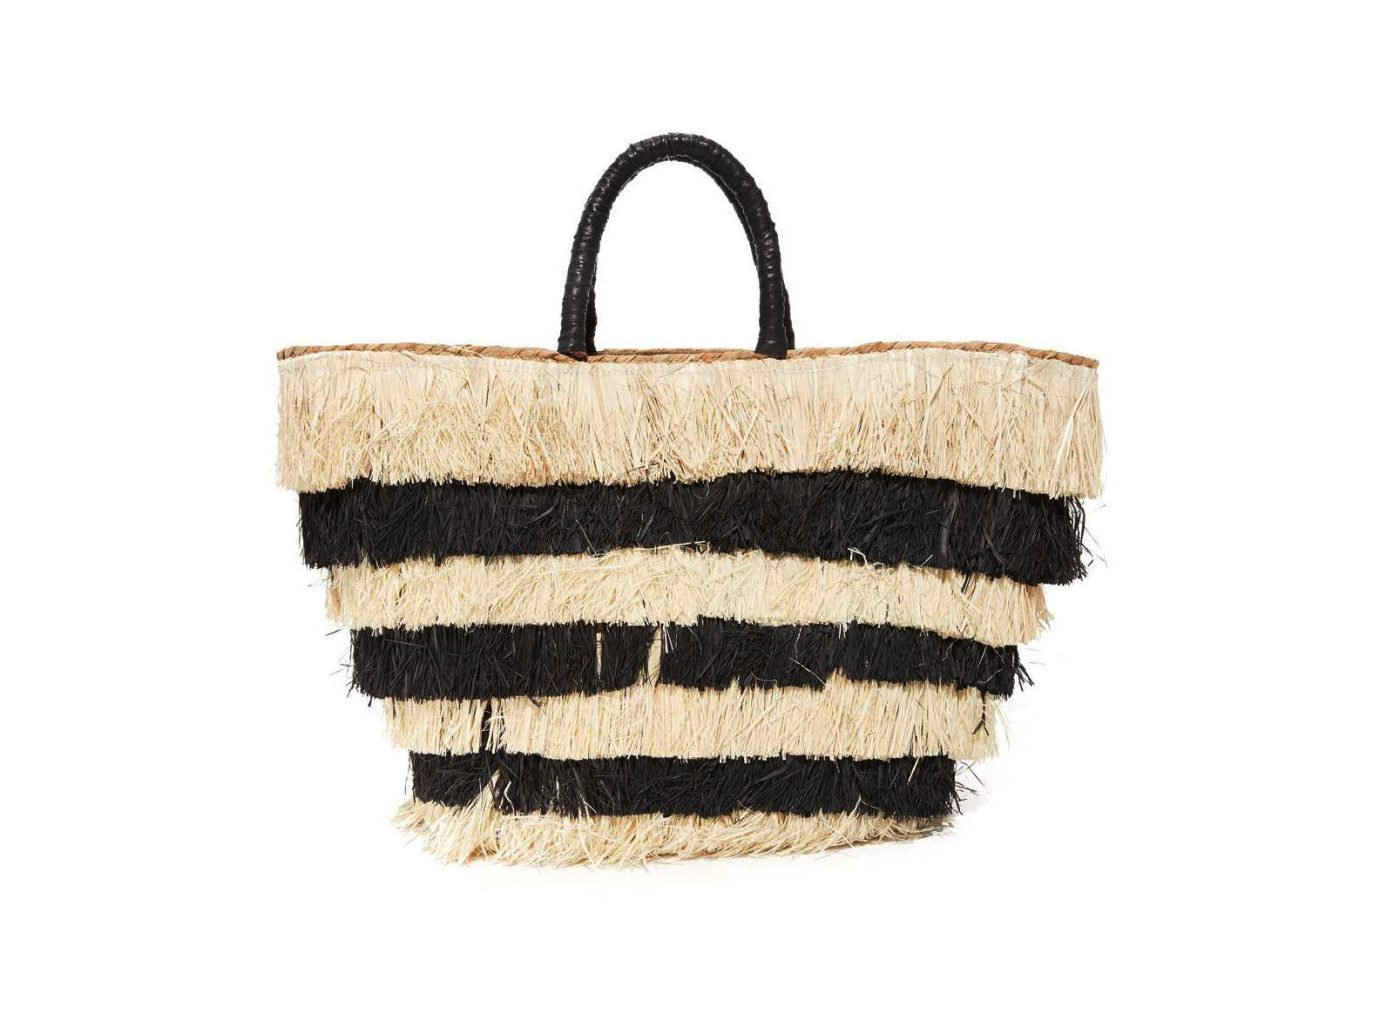 Style + Design handbag bag hairstyle fashion accessory lighting straw textile fur pattern moustache beige